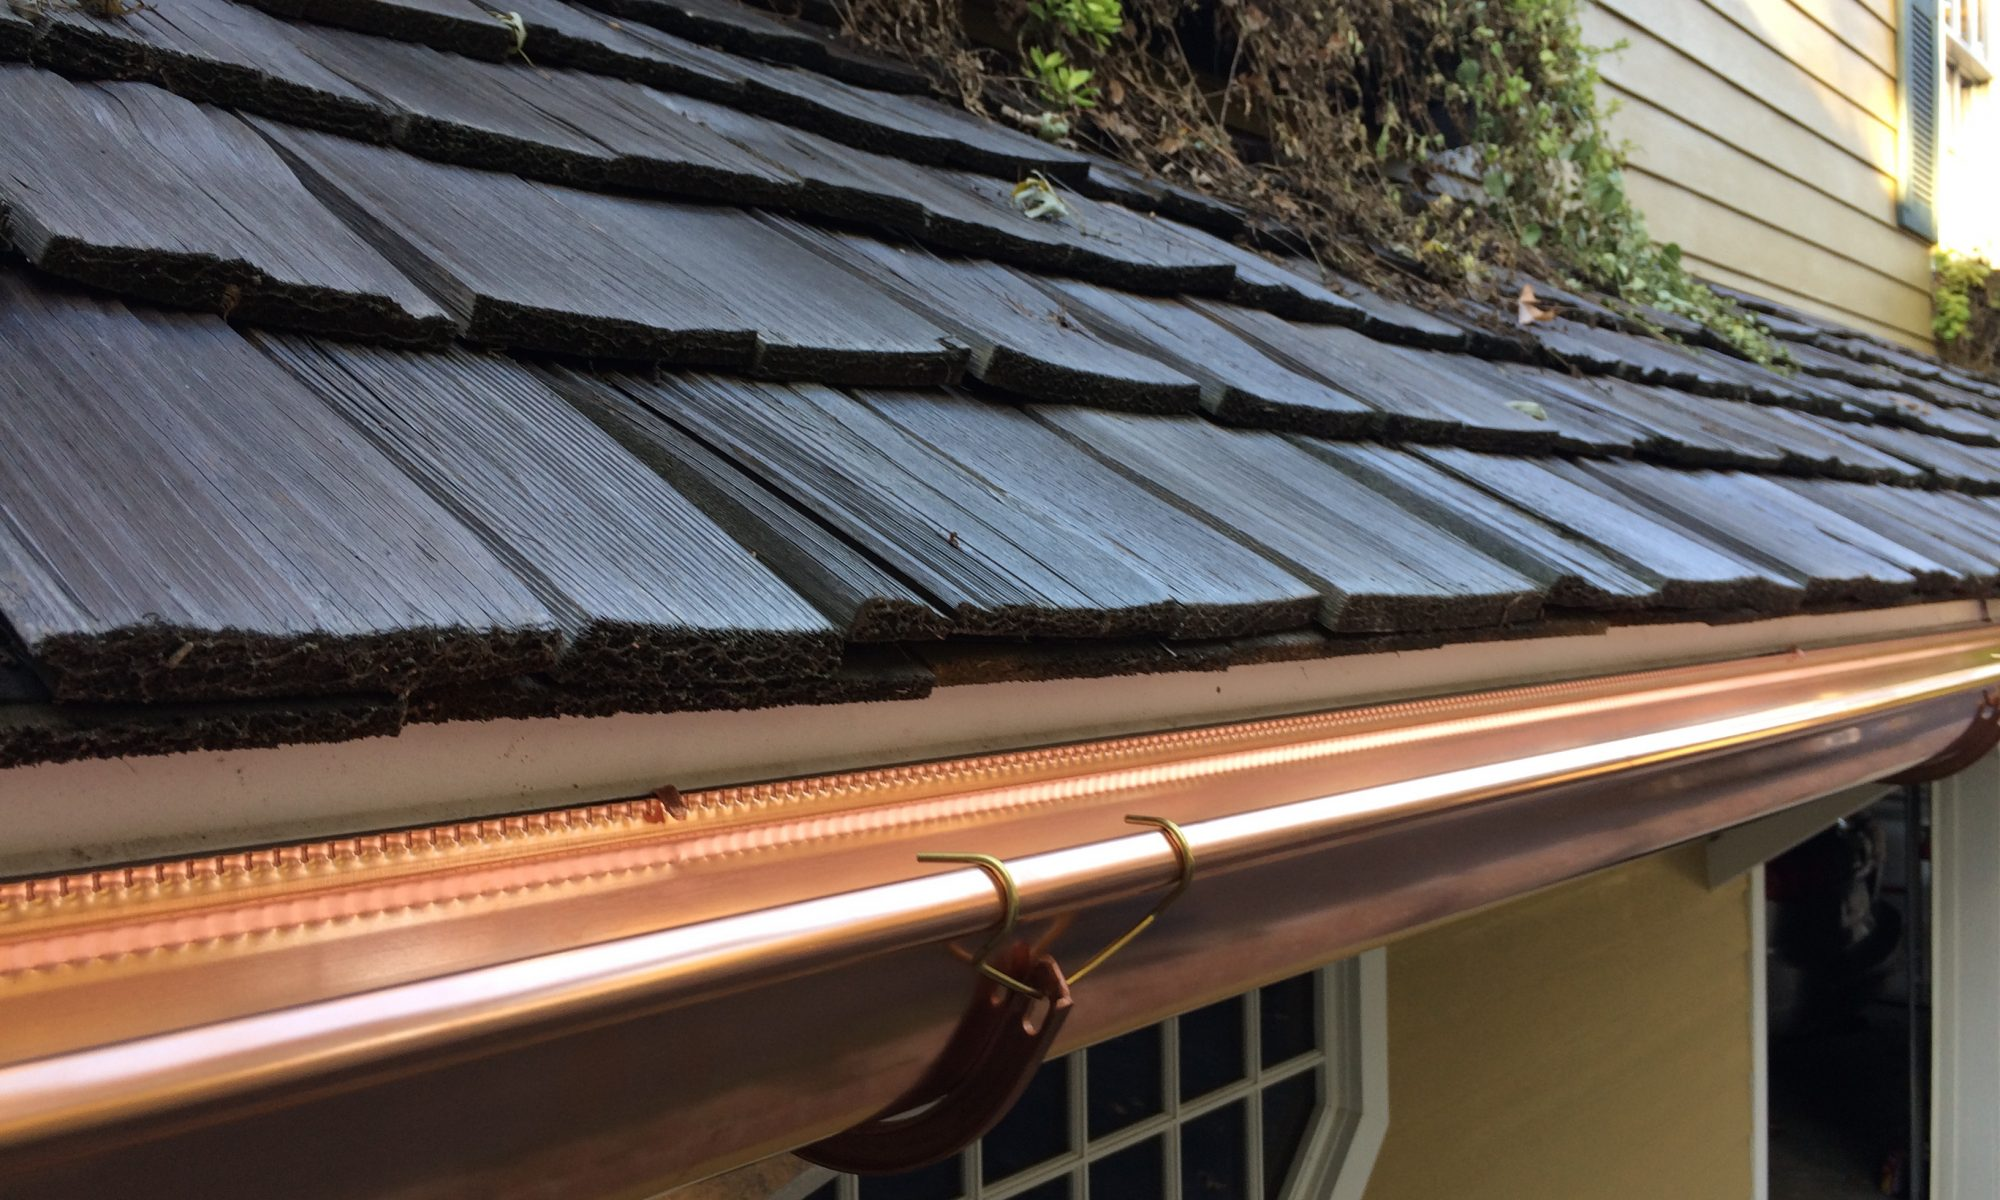 half round copper gutter installed on a wood shake roof